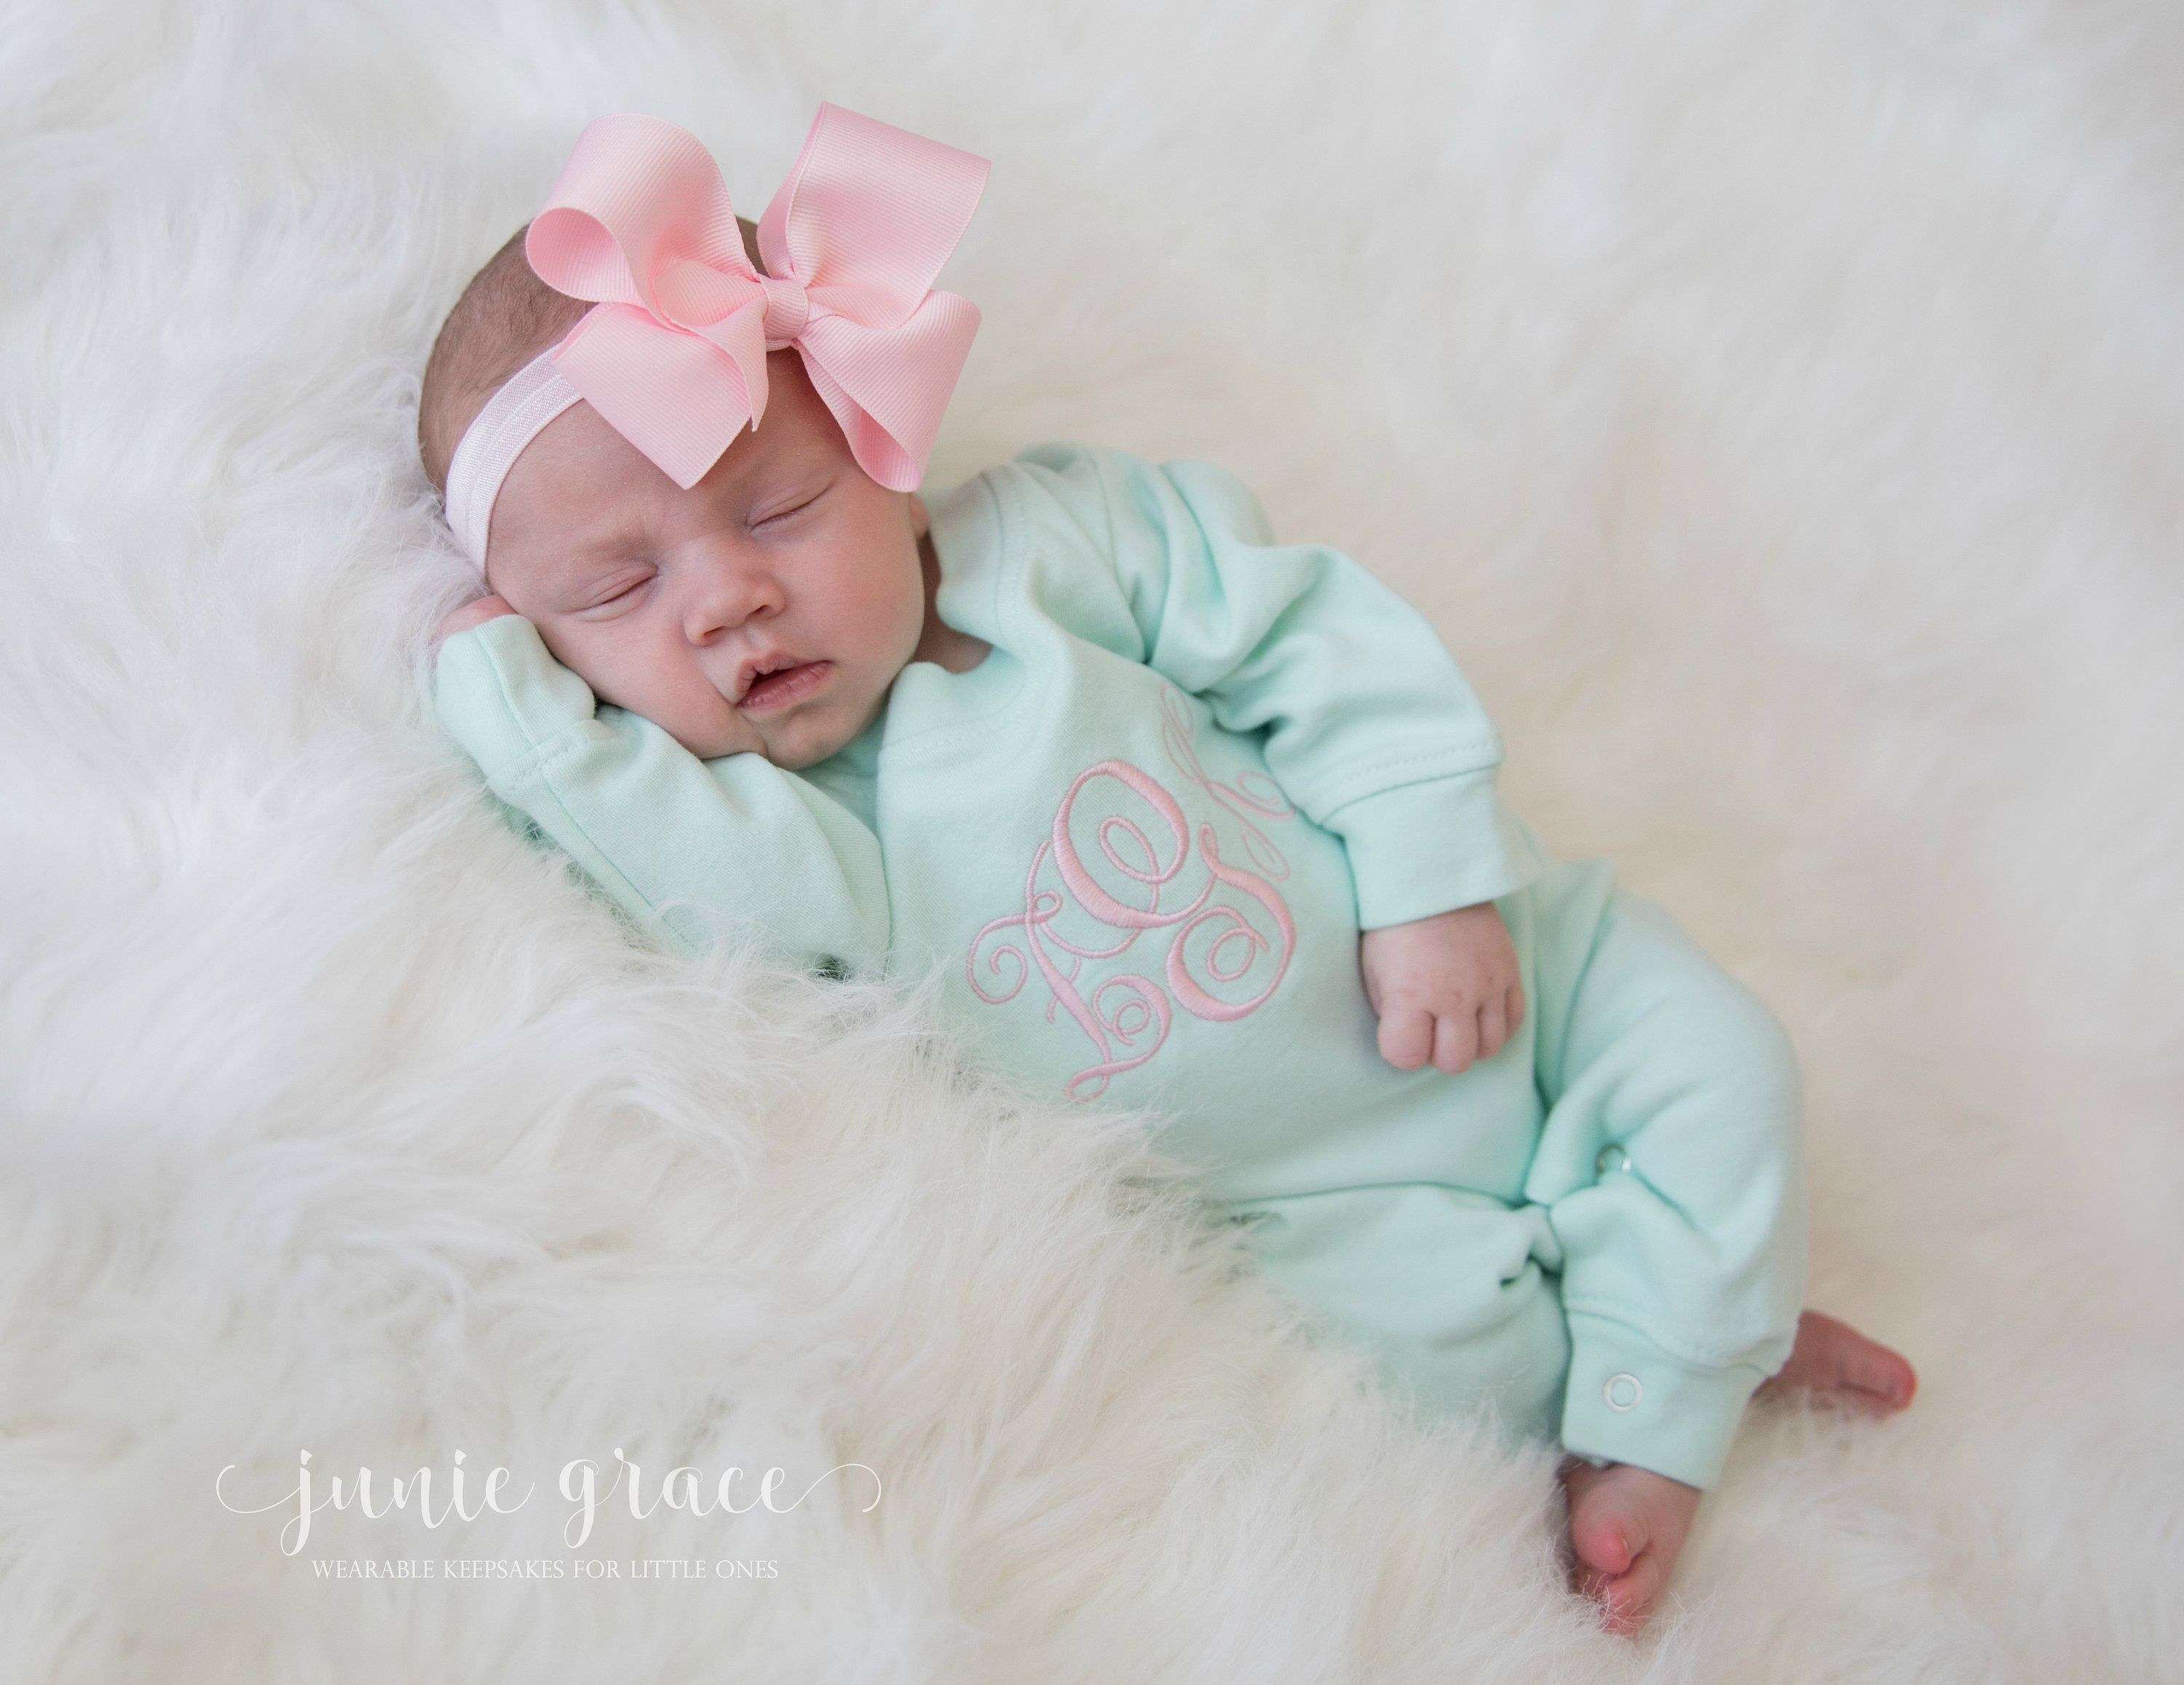 Personalized Tiara Monogrammed Sleeper Romper and Hat Set size 0-3 Month